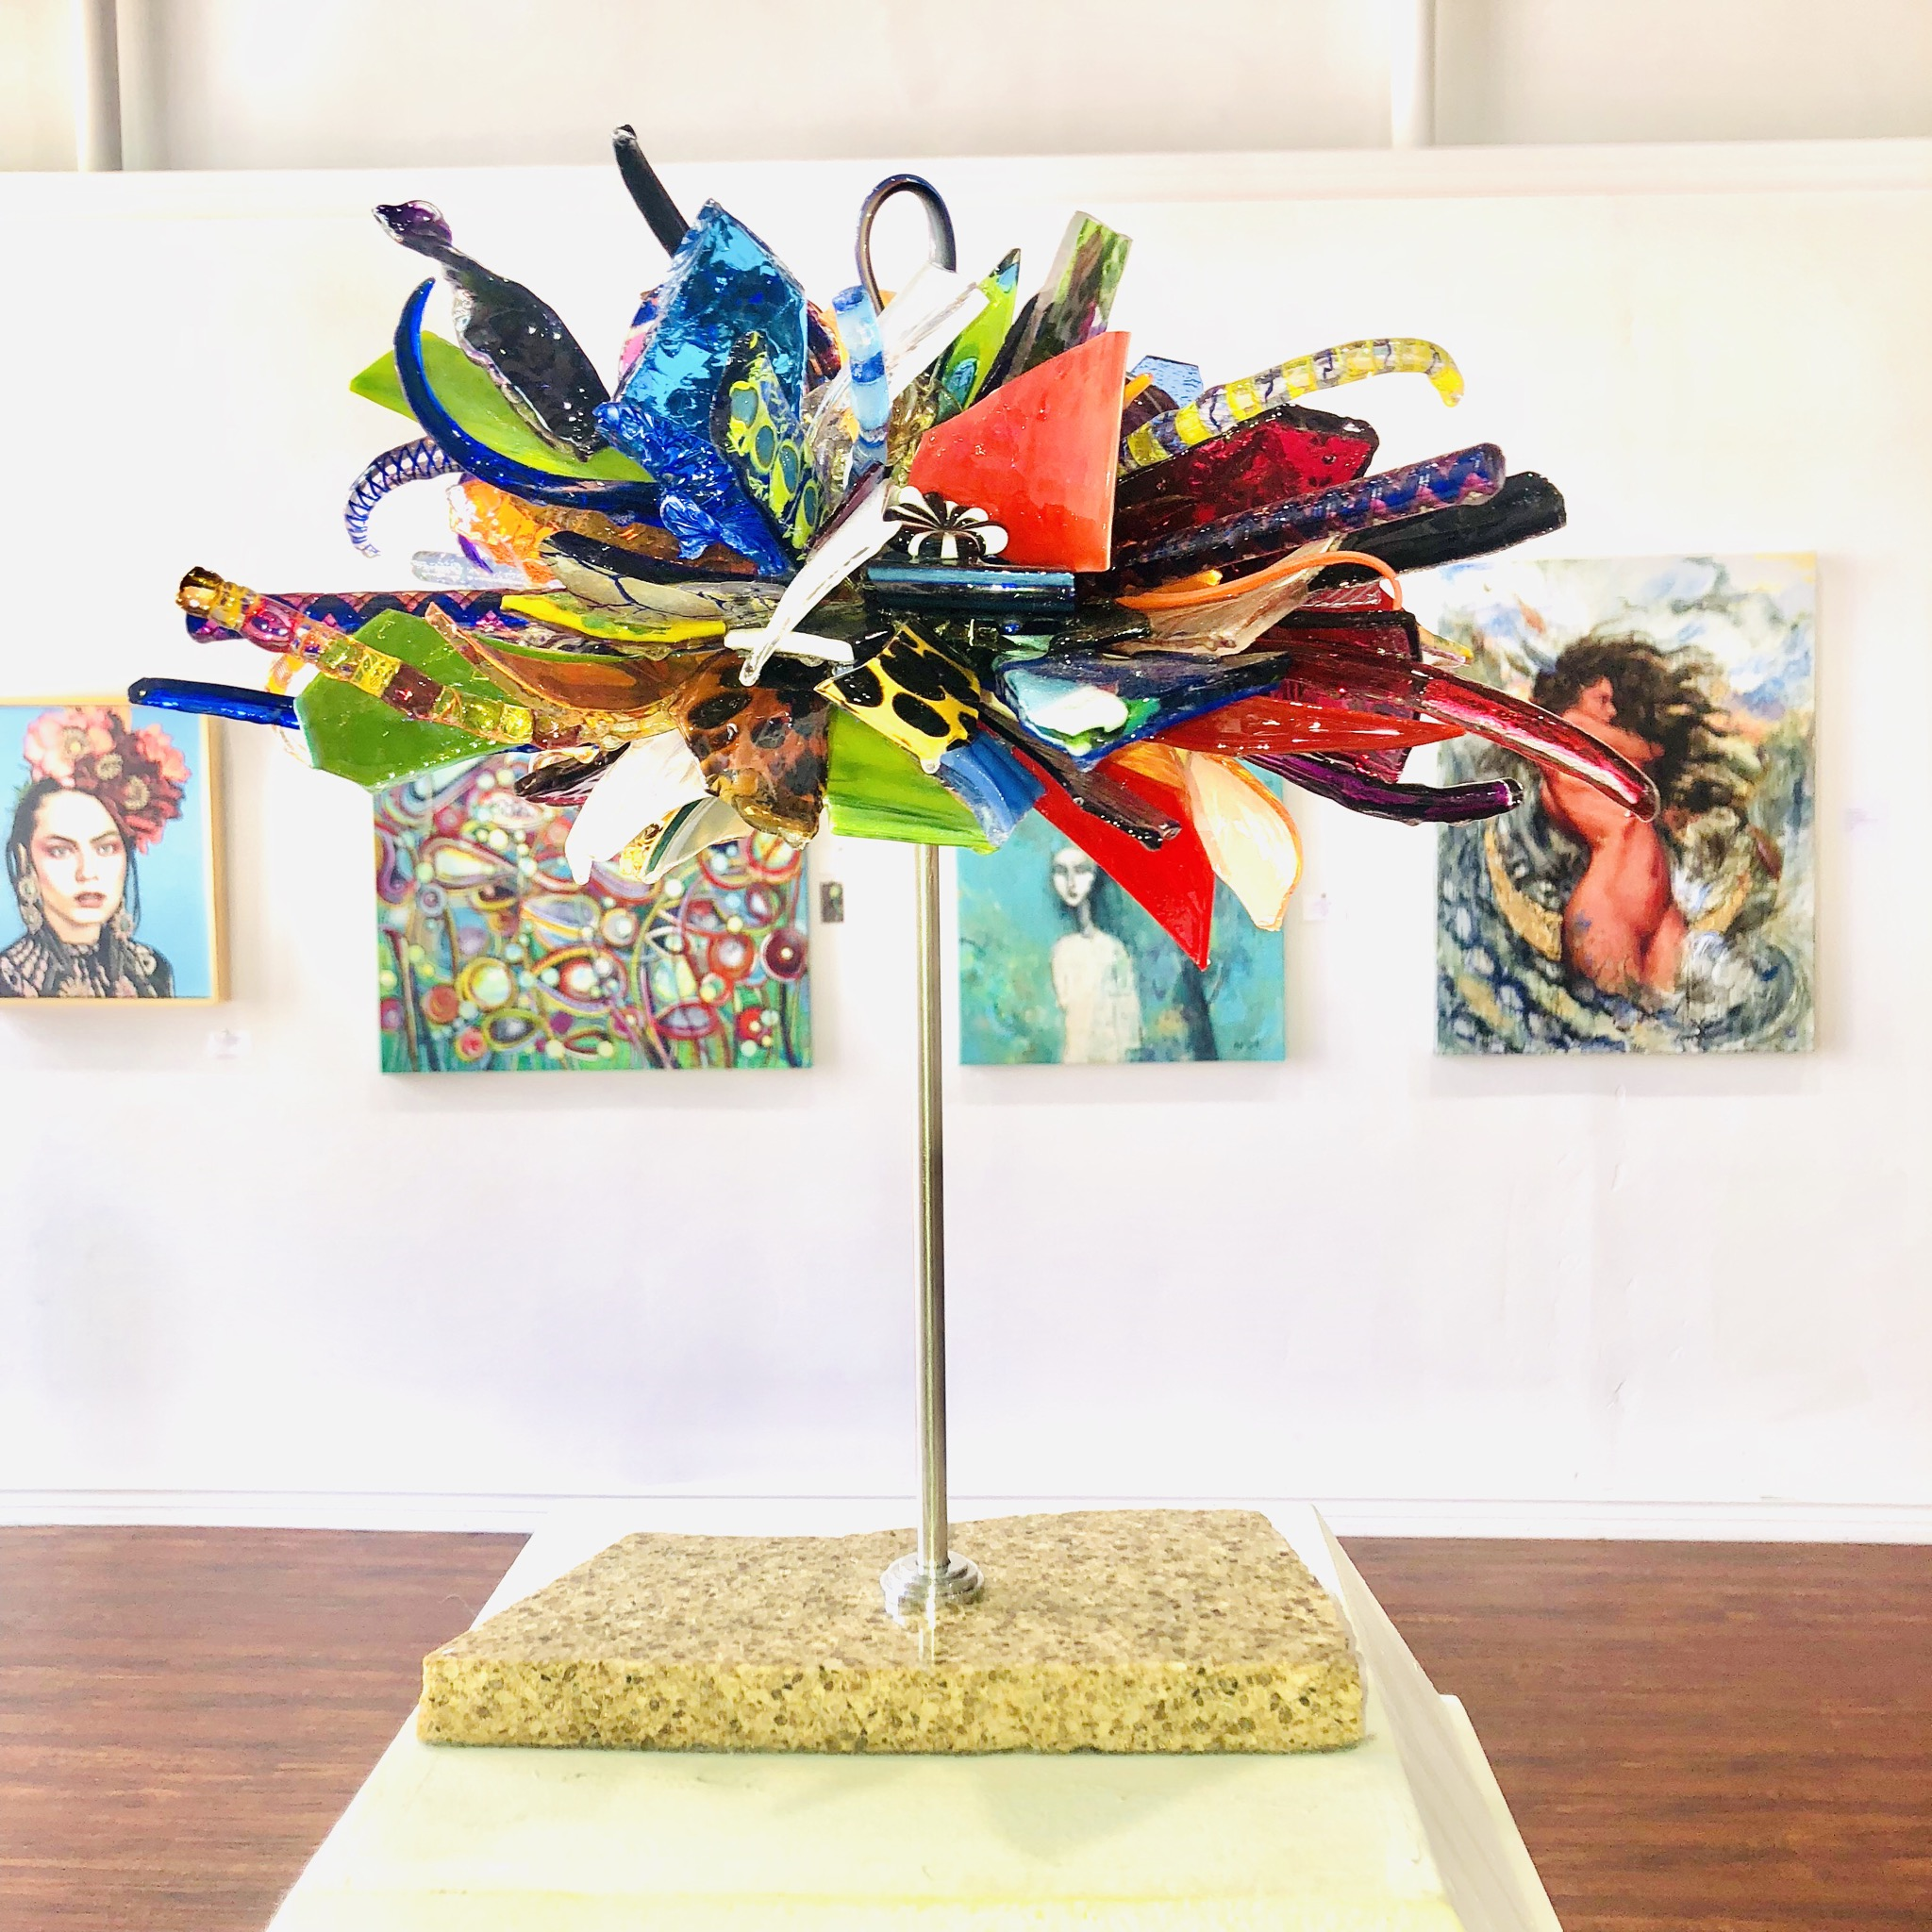 photo of Lucy Harvey's glass sculpture at Glenn Dallas Gallery in Santa Barbara, CA